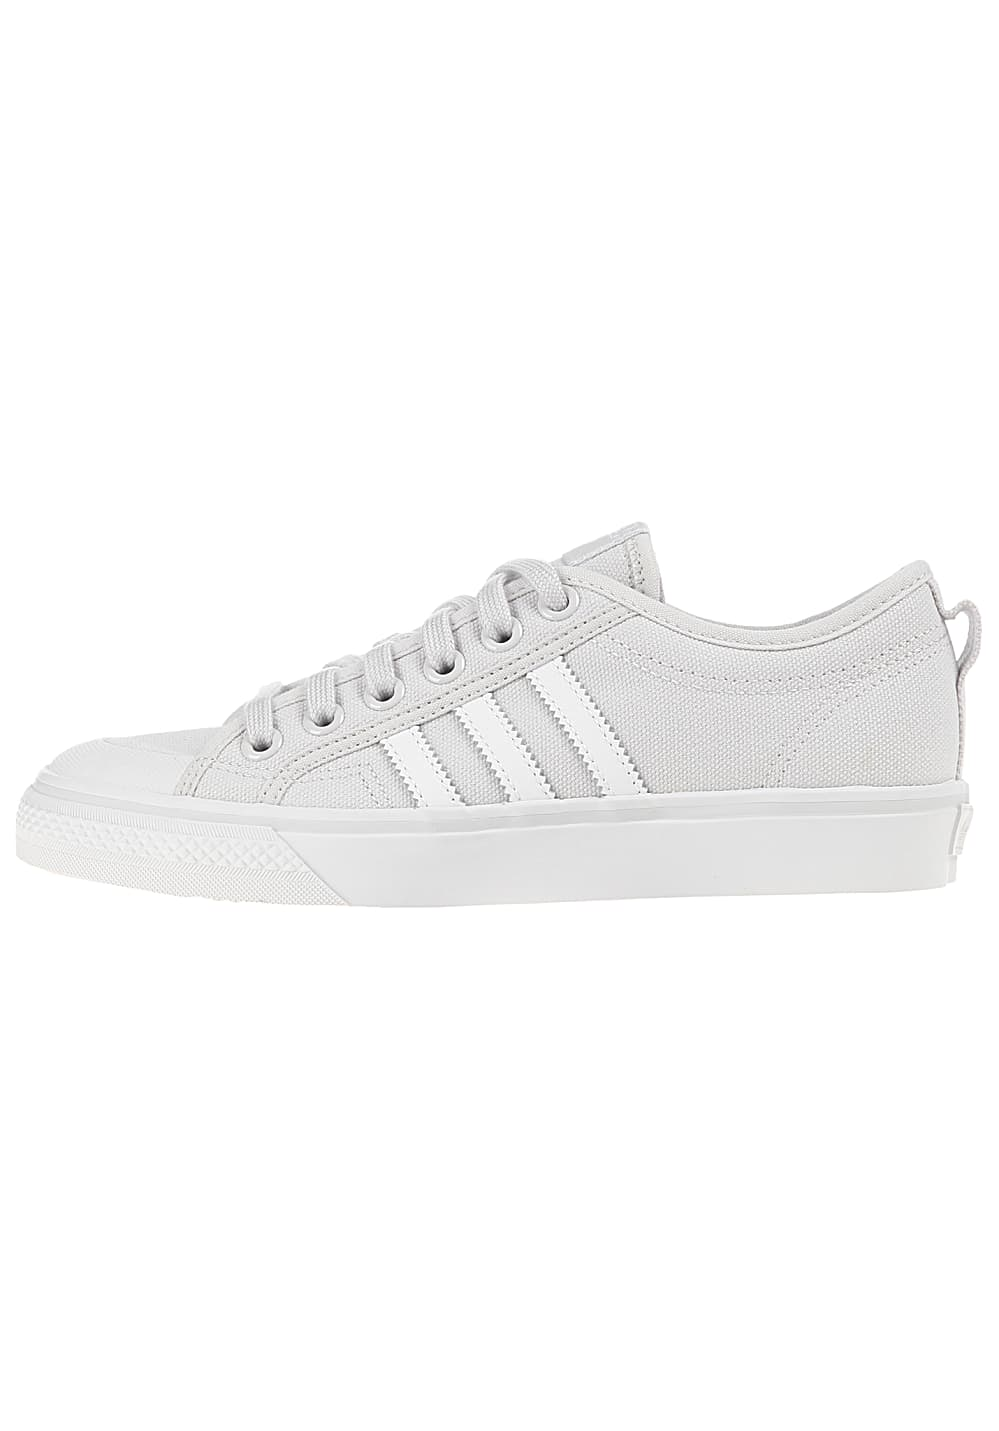 new lifestyle clearance sale classic shoes ADIDAS ORIGINALS Nizza - Baskets pour Femme - Gris - Planet ...